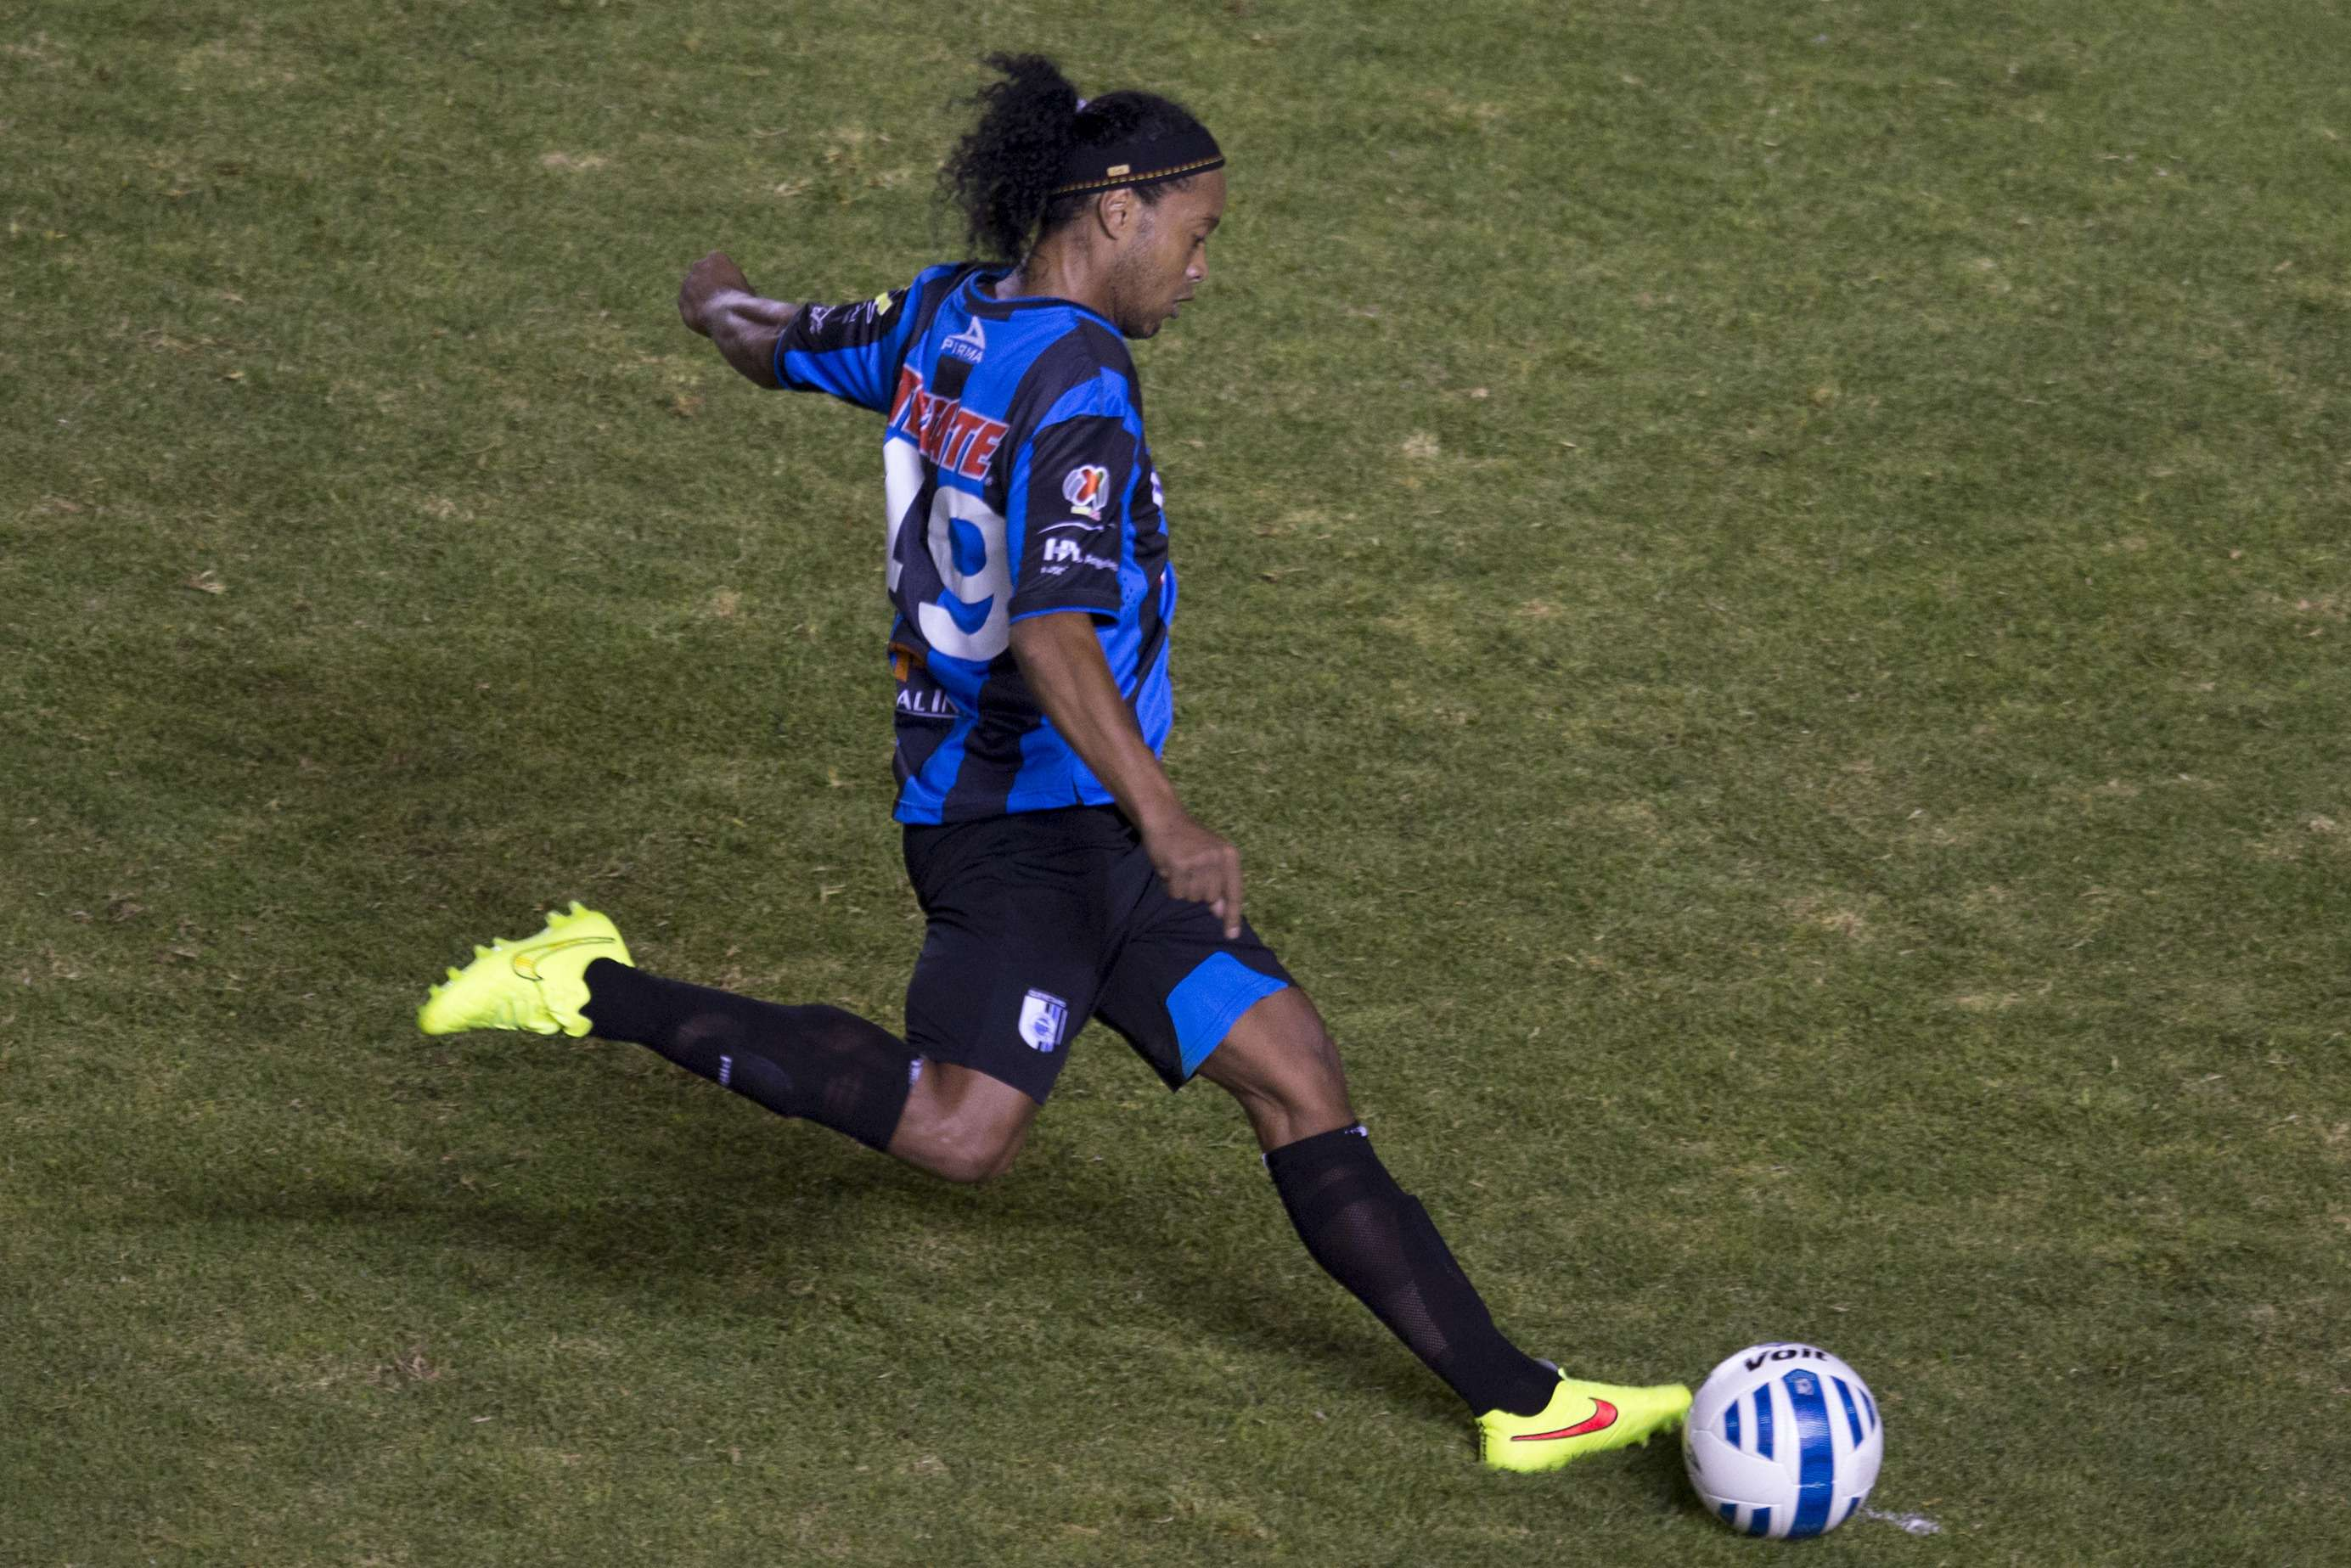 Ronaldinho: The Mexican had his anticipated Queretaro debut in the Copa MX against Tigres. Things did not start well for 'Dinho as he missed a penalty in his team's loss. Foto: Getty Images